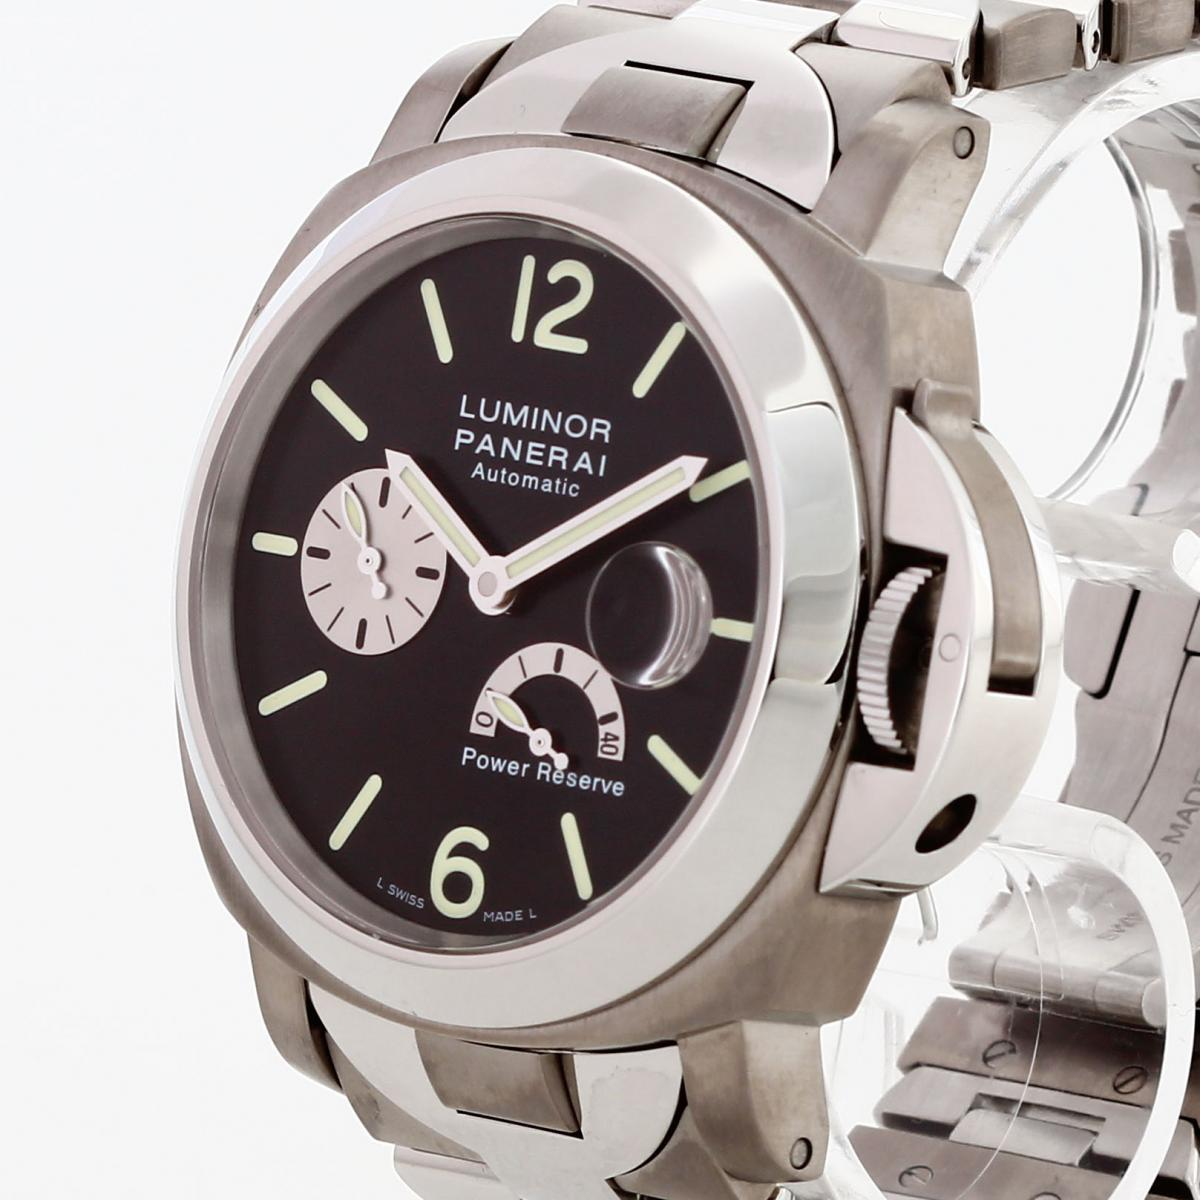 Panerai Luminor Power Reserve Ref. PAM00171 / OP6696